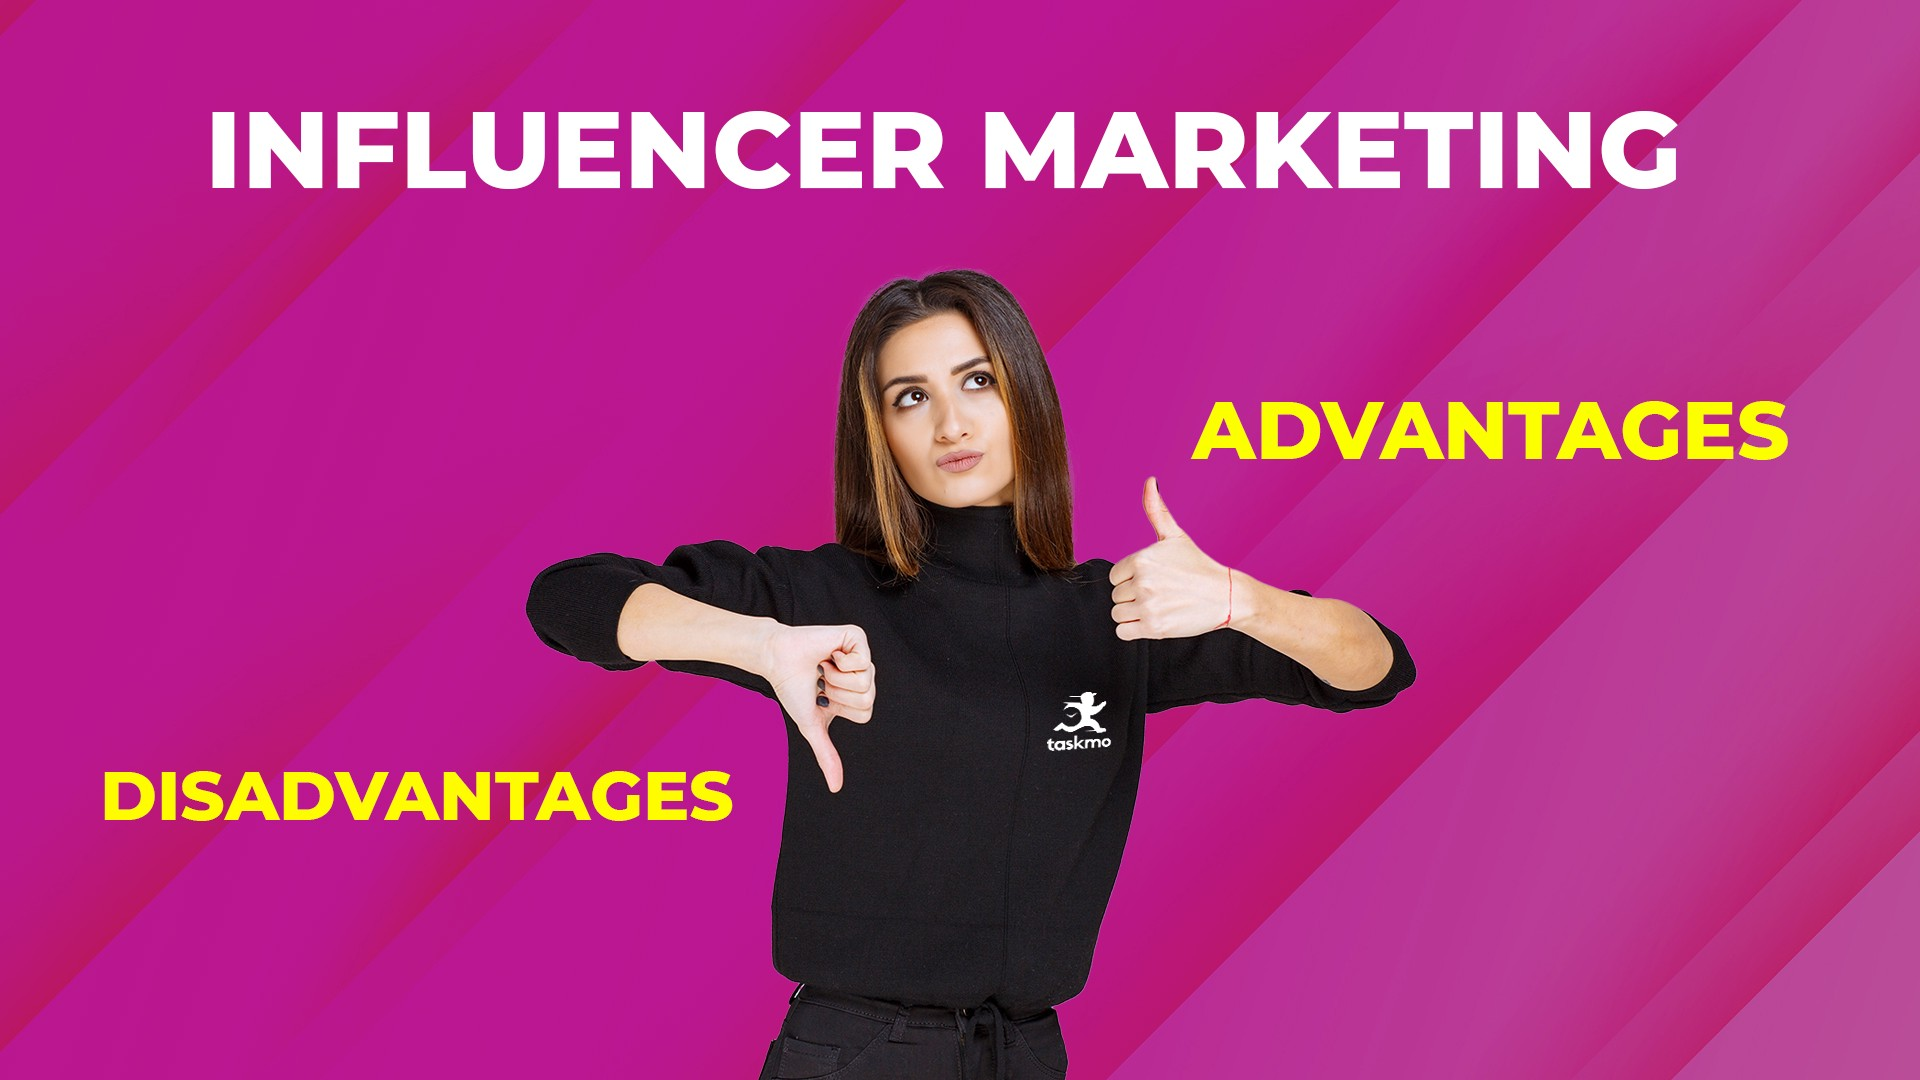 Advantages and Disadvantages of Influencer Marketing